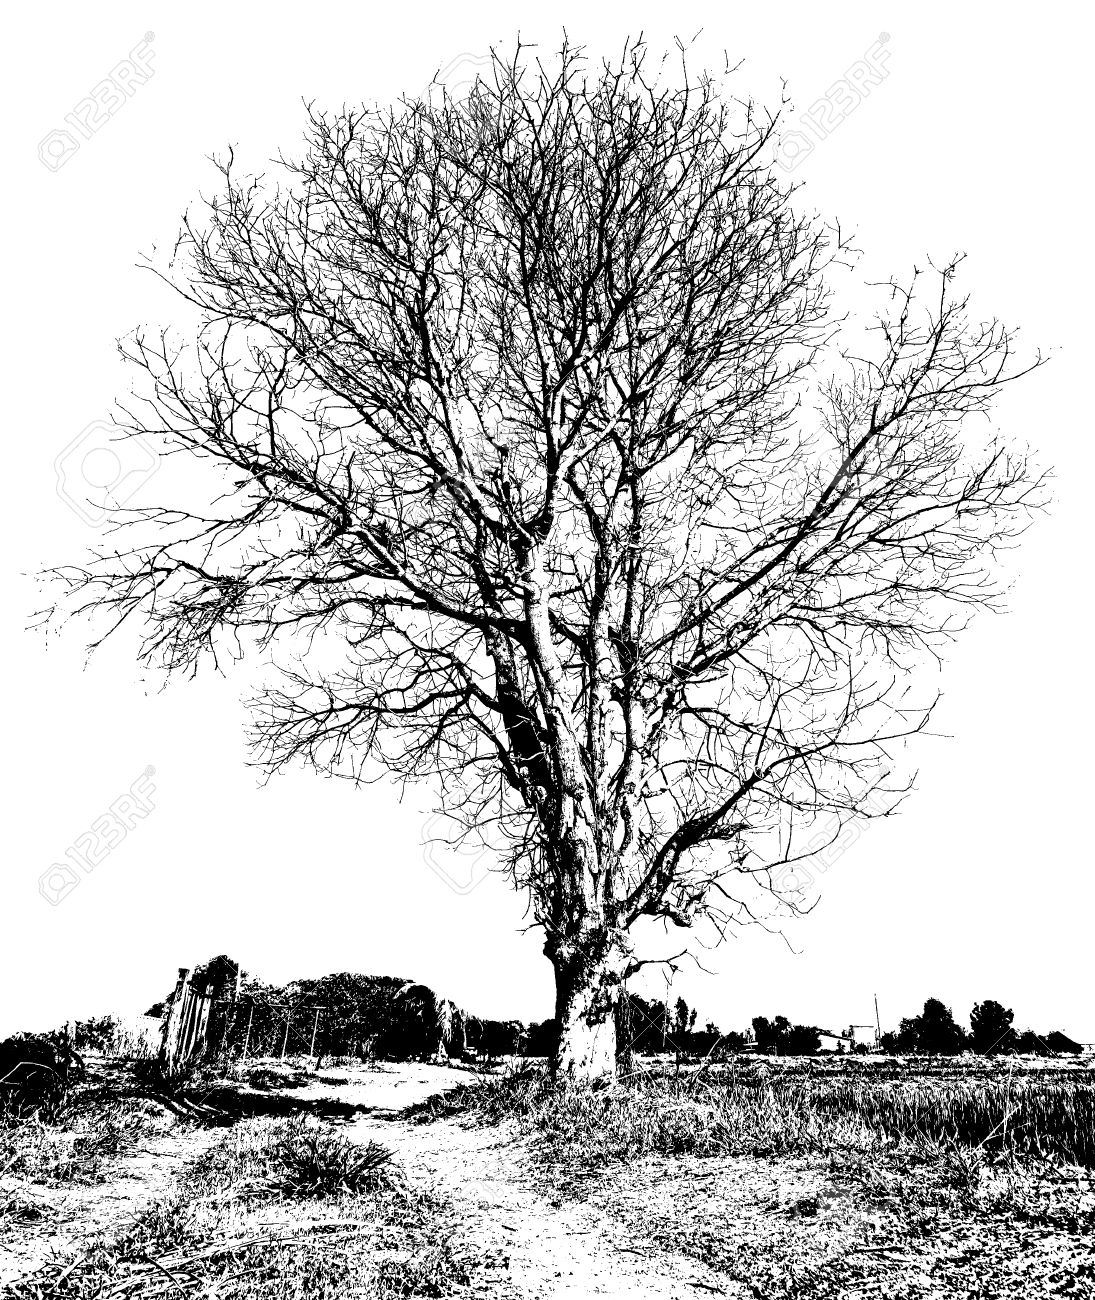 1095x1300 Black And White Drawing Of A Dry Tree Without Leaves, Which Is